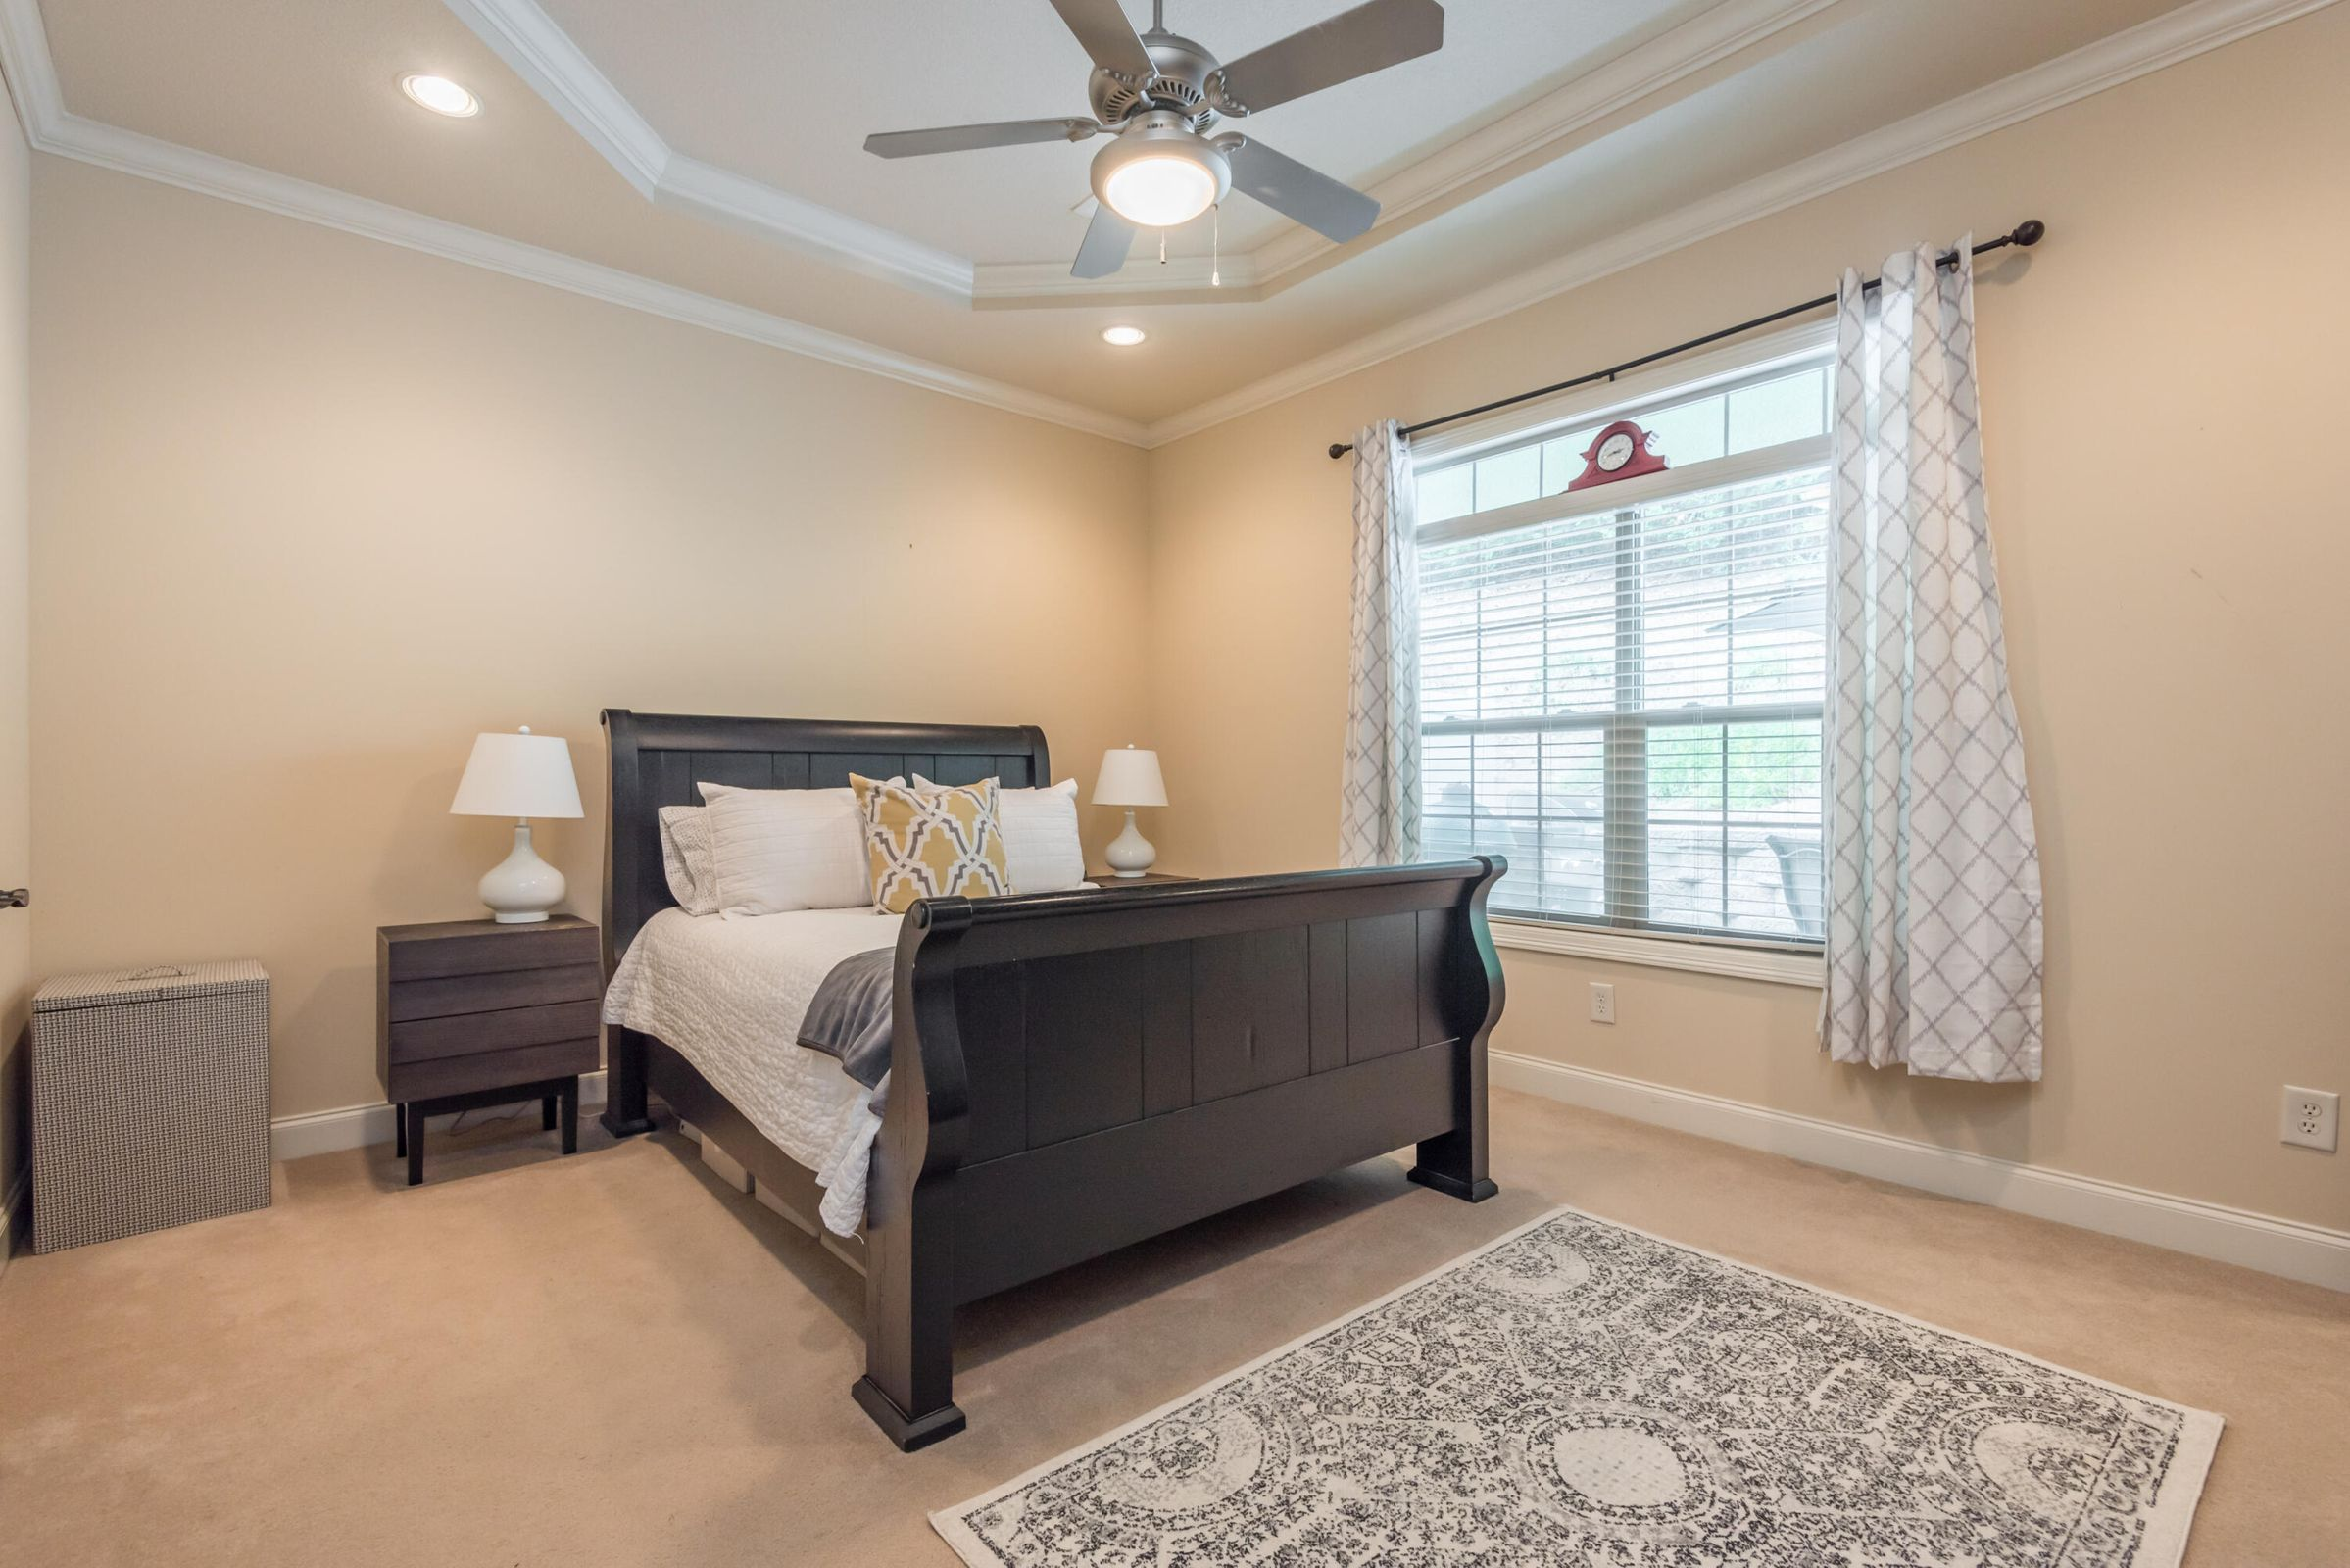 Master Bedroom on the main